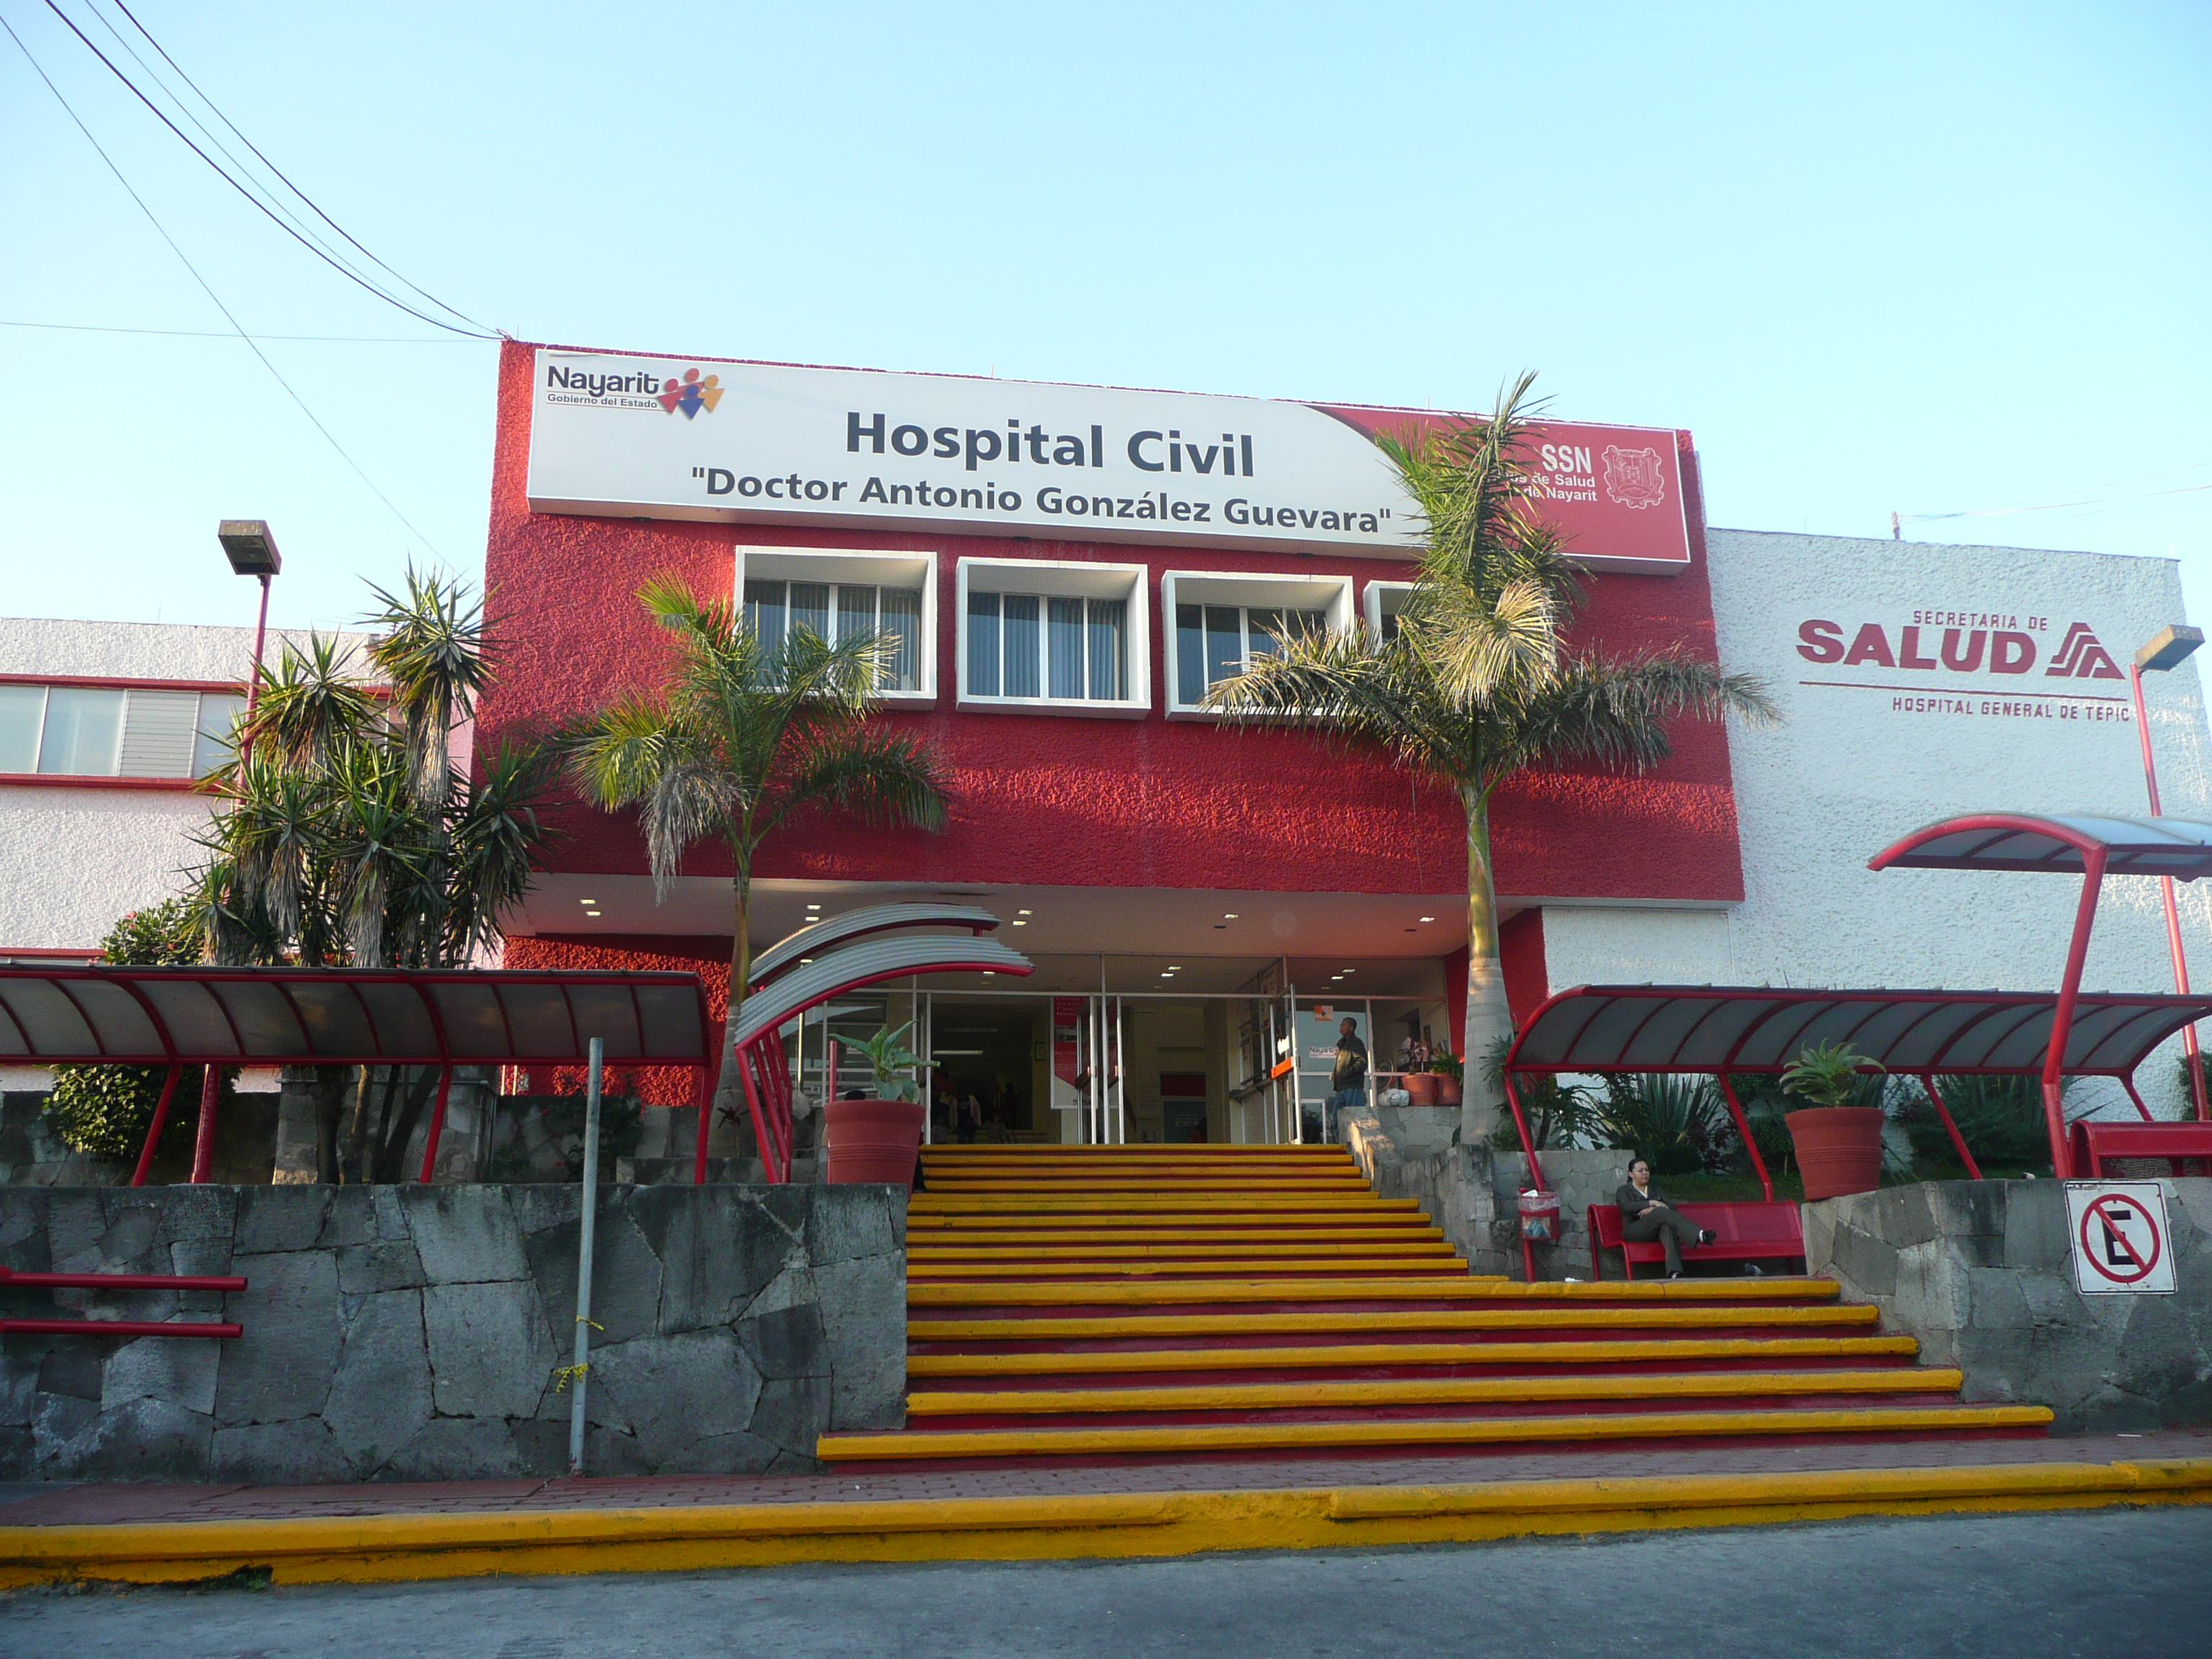 Hospital Civil Dr Antonio González Guevara Wikipedia